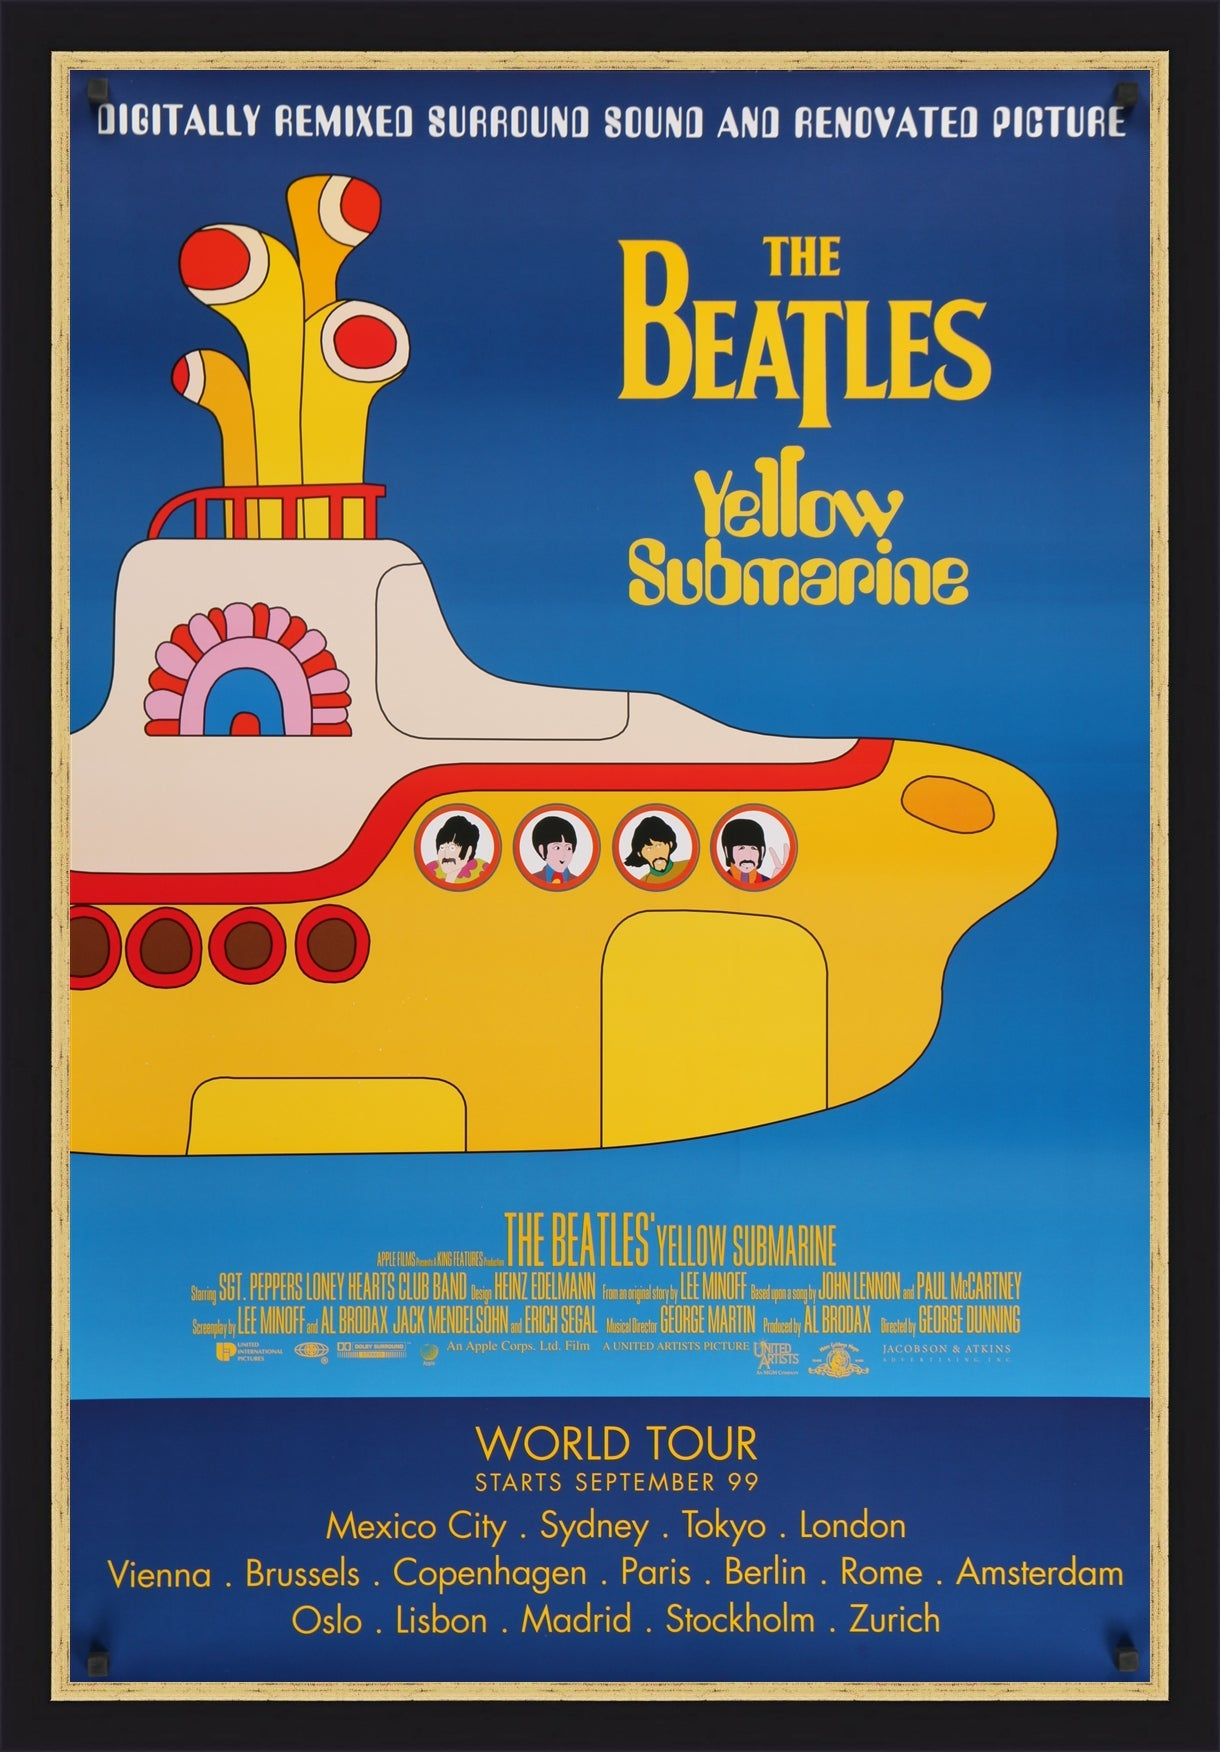 An original movie / film poster for The Beatles' Yellow Submarine